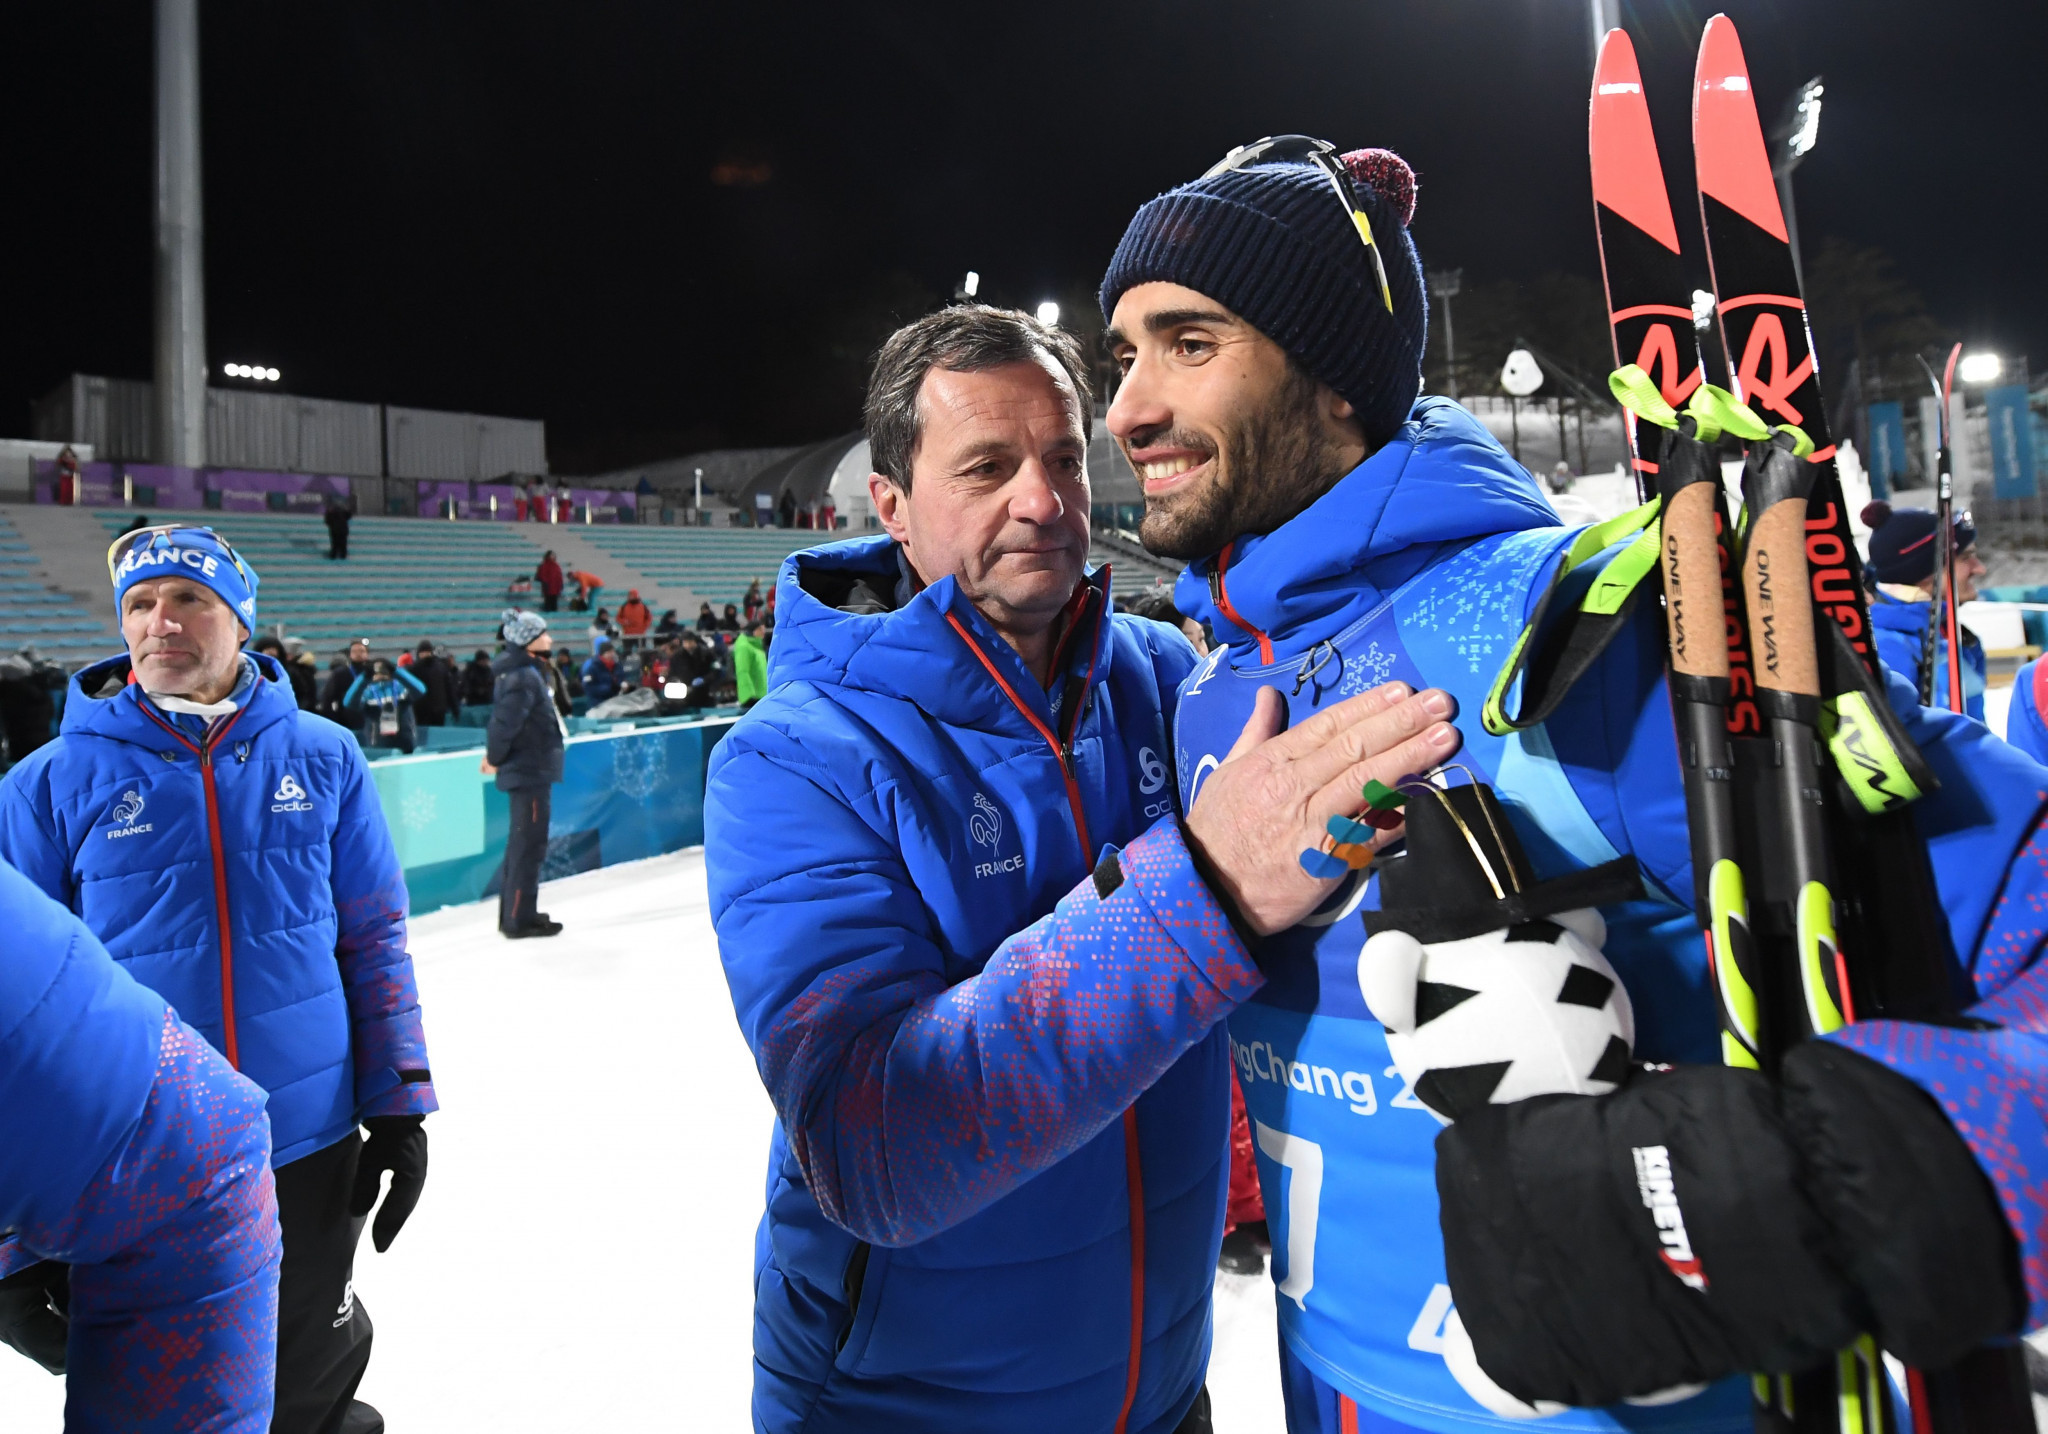 Michel Vion, centre, congratulates French biathlete Martin Fourcade during Pyeongchang 2018 ©Getty Images